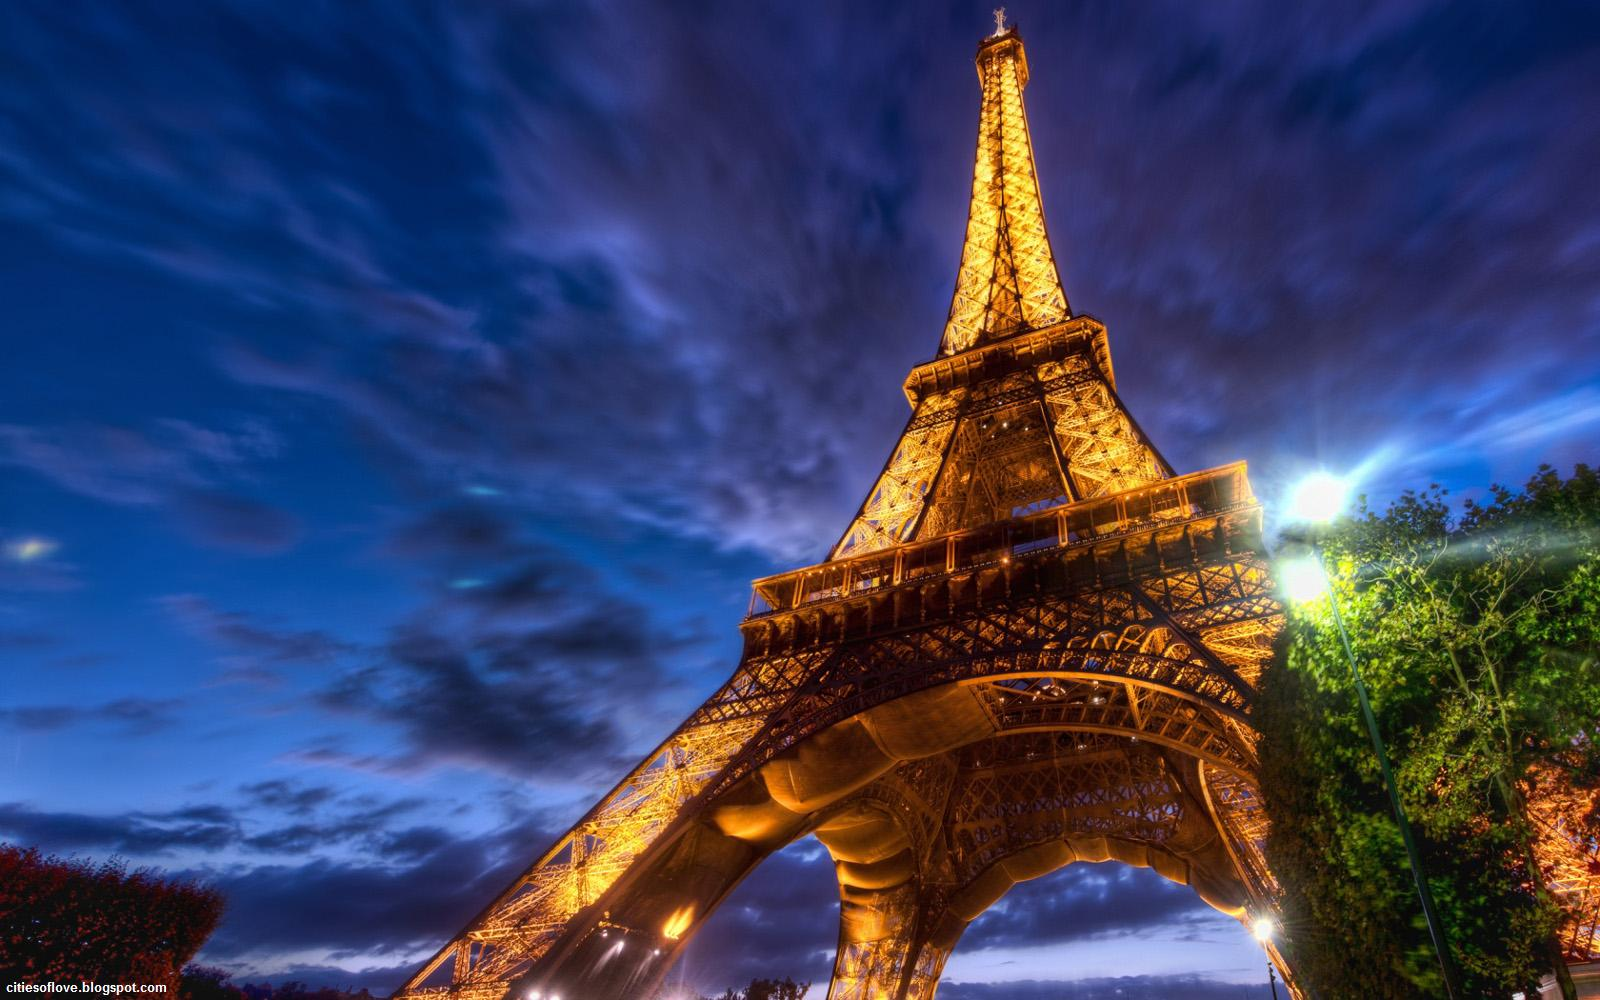 http://1.bp.blogspot.com/-SifsdYStOWg/UJUPcAG-ZjI/AAAAAAAAIQ4/i58Rz5qrips/s1600/Paris_Eiffel_Tower_At_Night_The_Beautiful_French_Iron_Lady_France_Hd_Desktop_Wallpaper_citiesoflove.blogspot.com.jpg